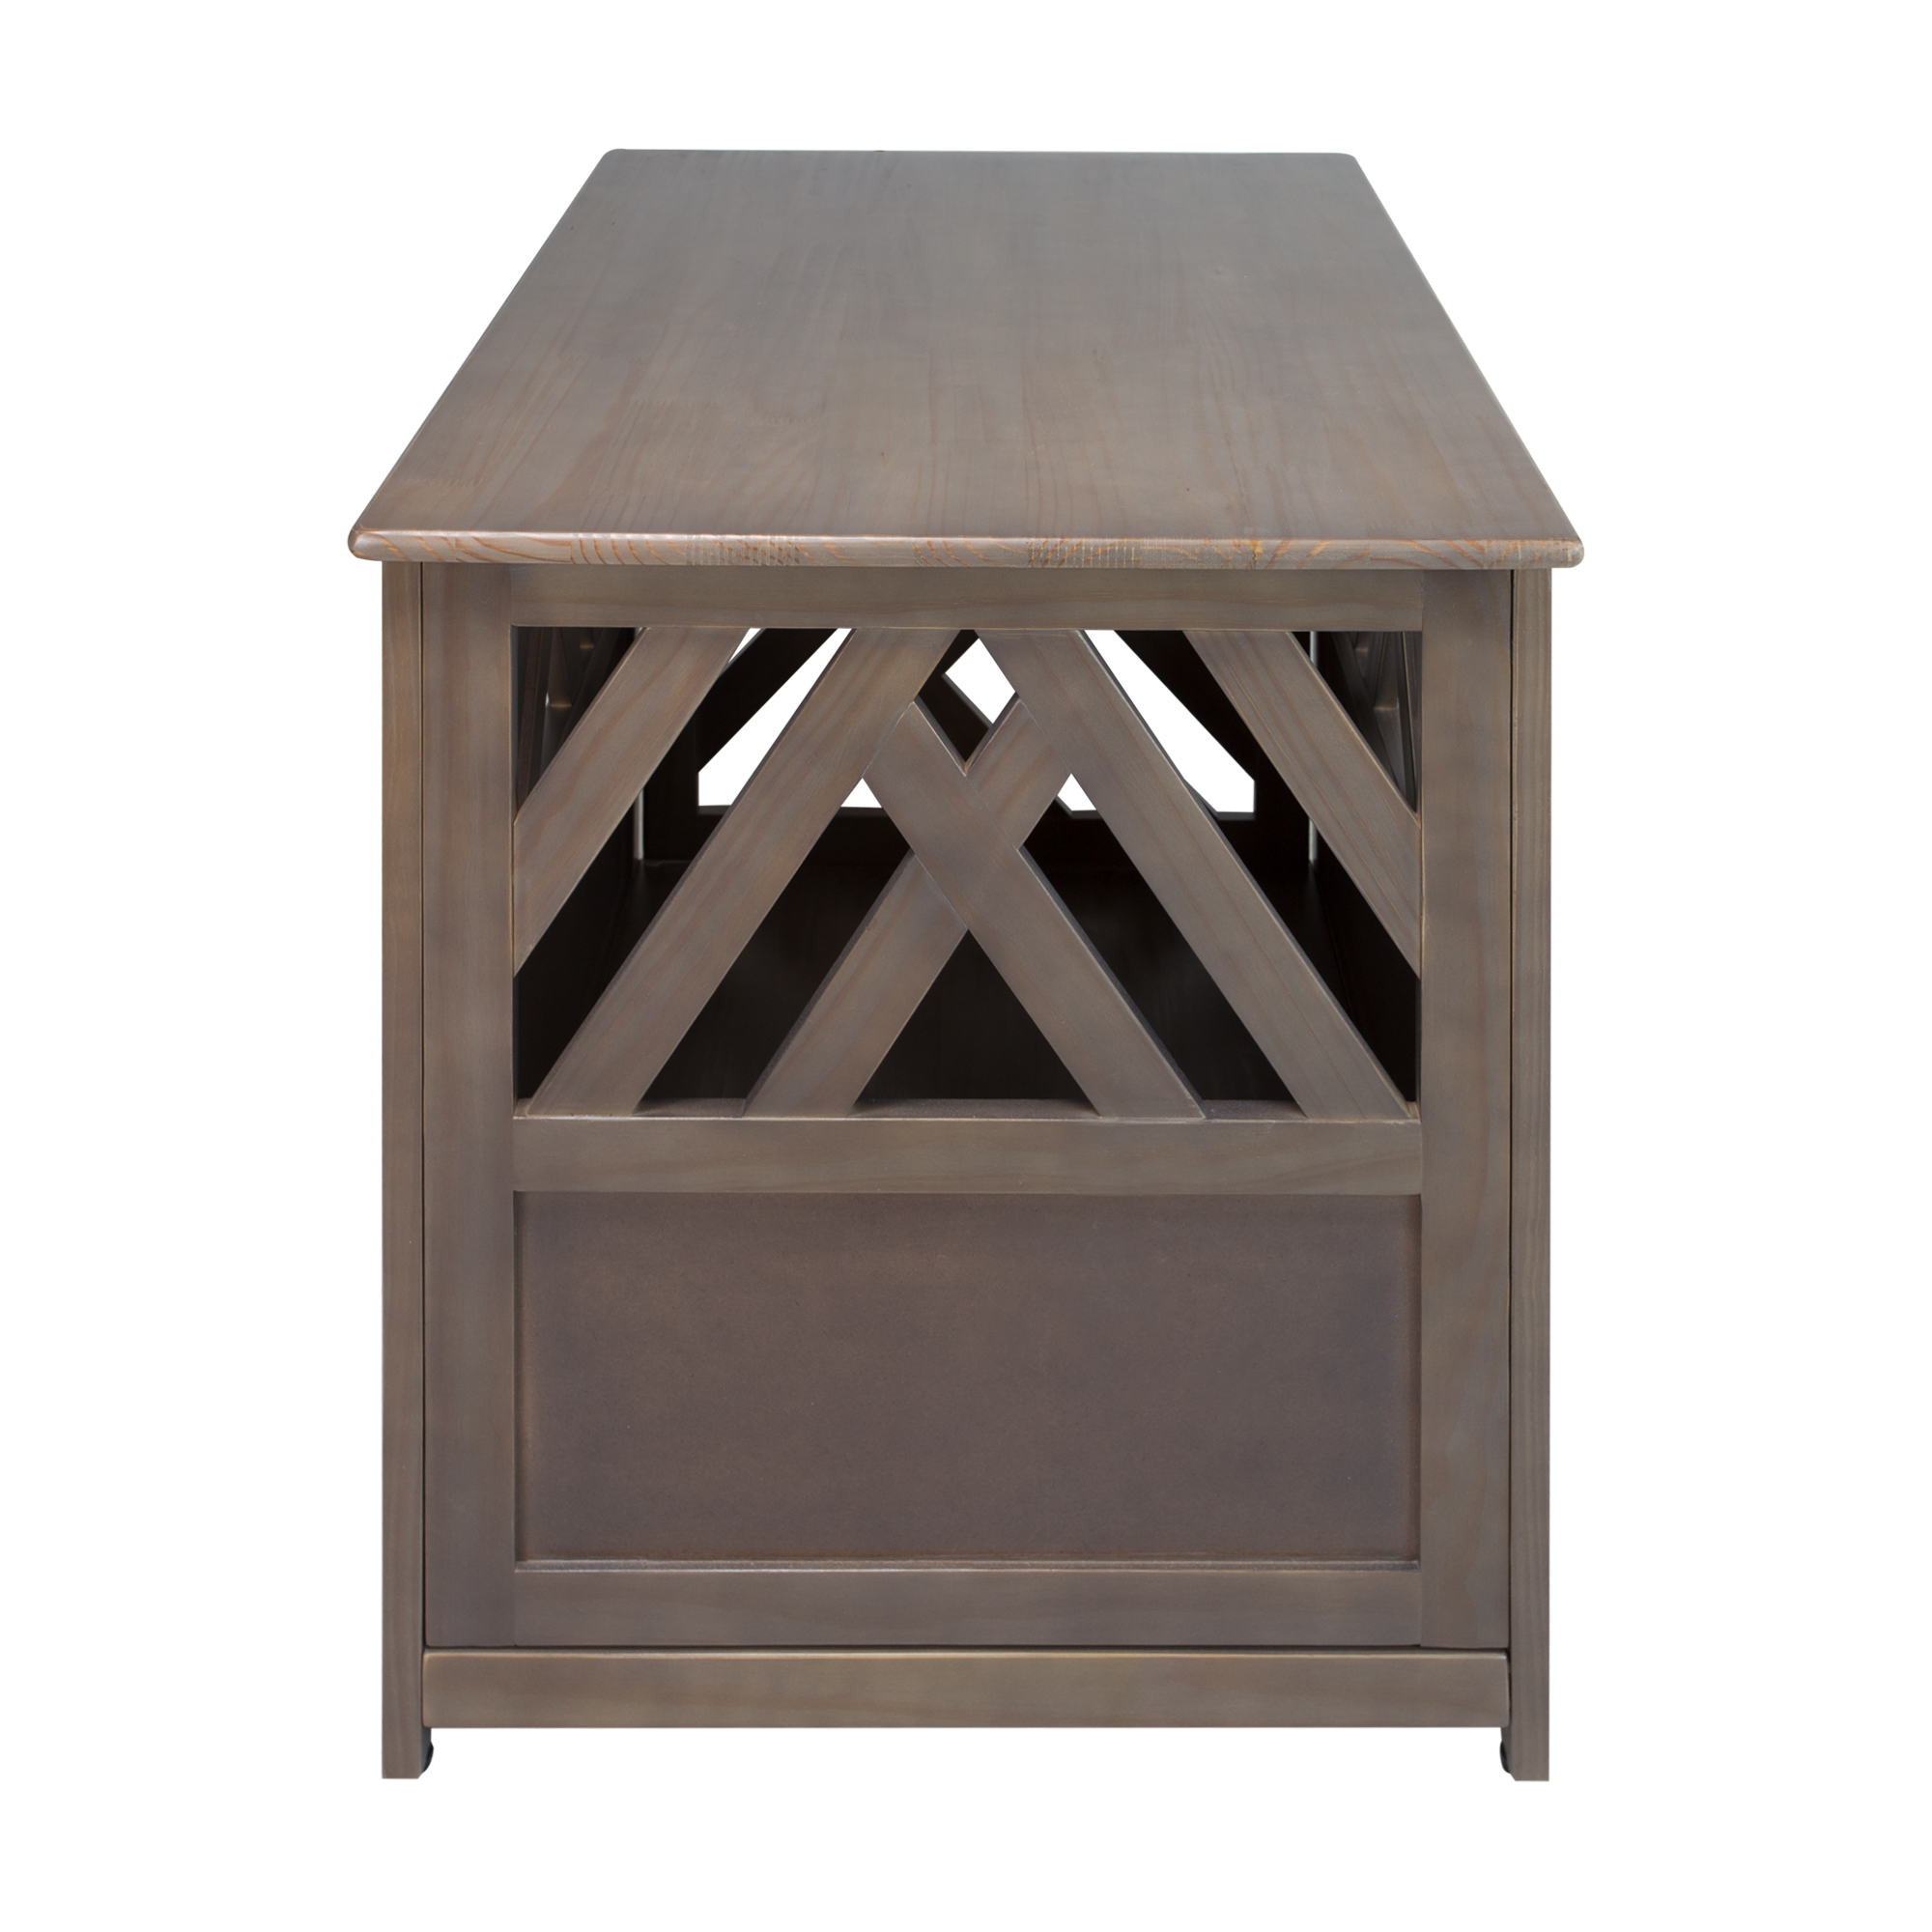 Modern Wooden Lattice Dog Crate End Table – Casual Home